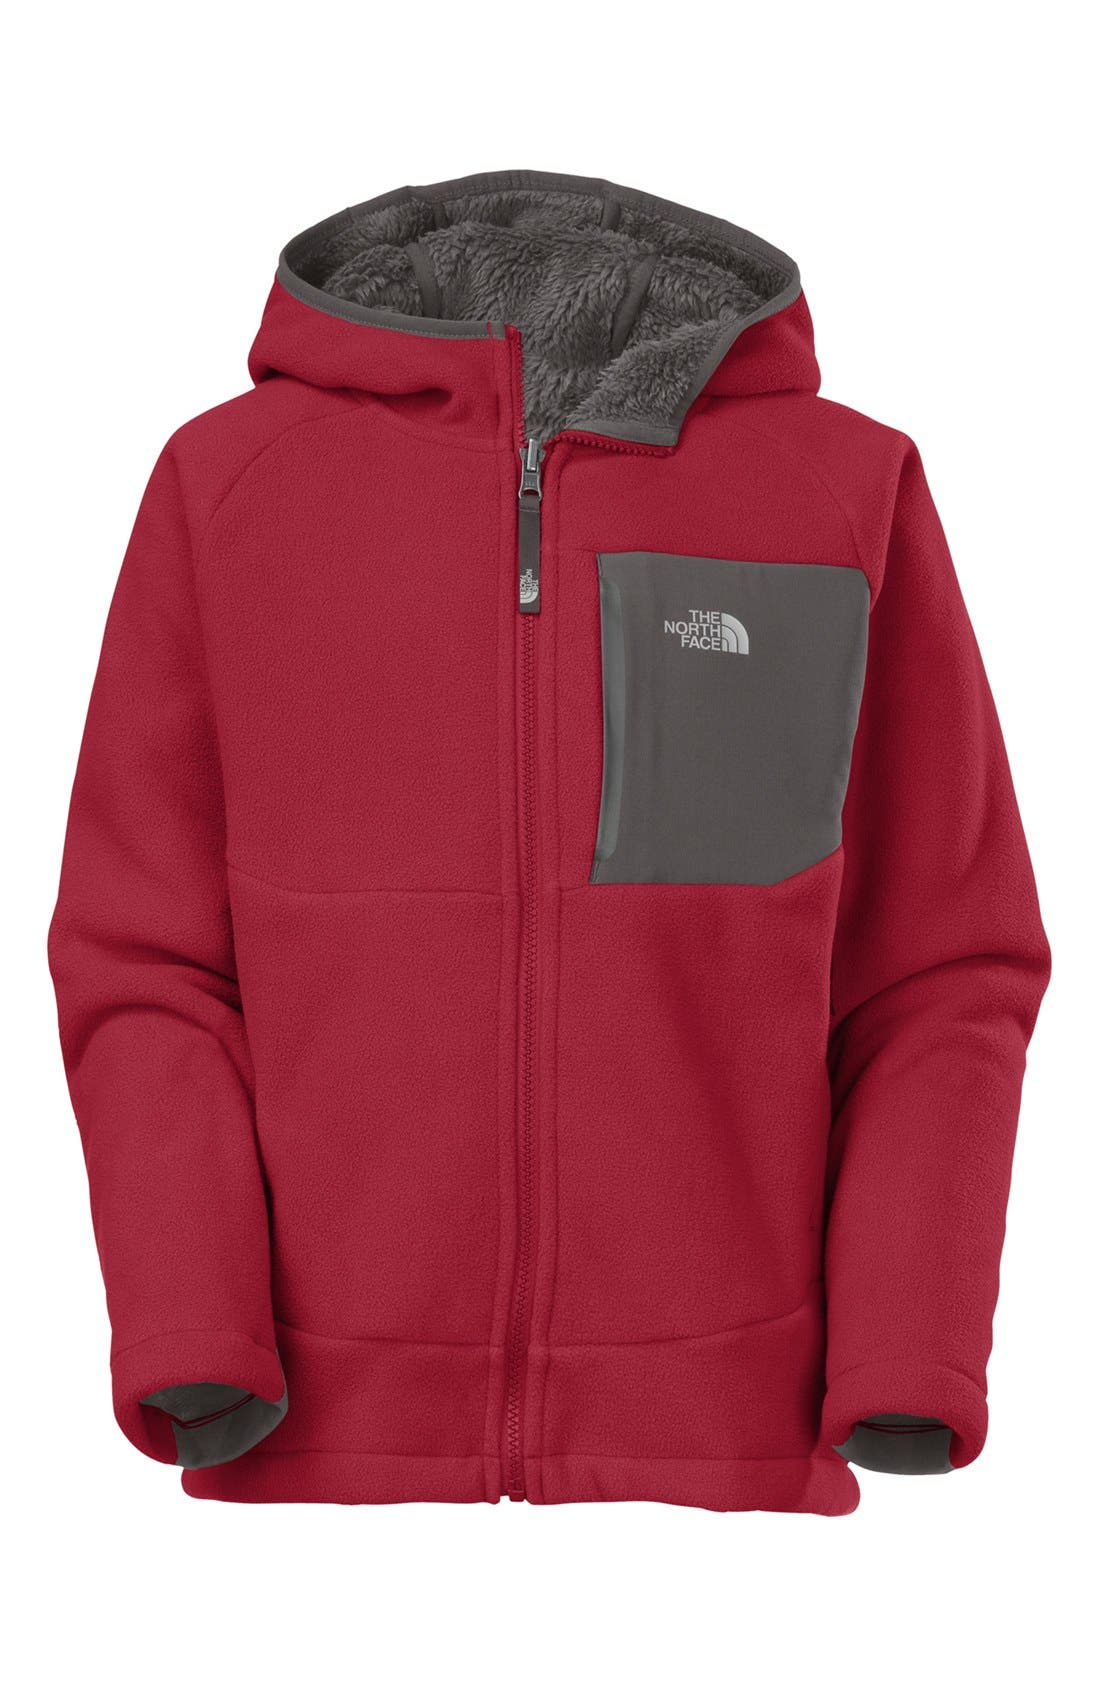 Main Image - The North Face 'Chimborazo' Hoodie (Big Boys)